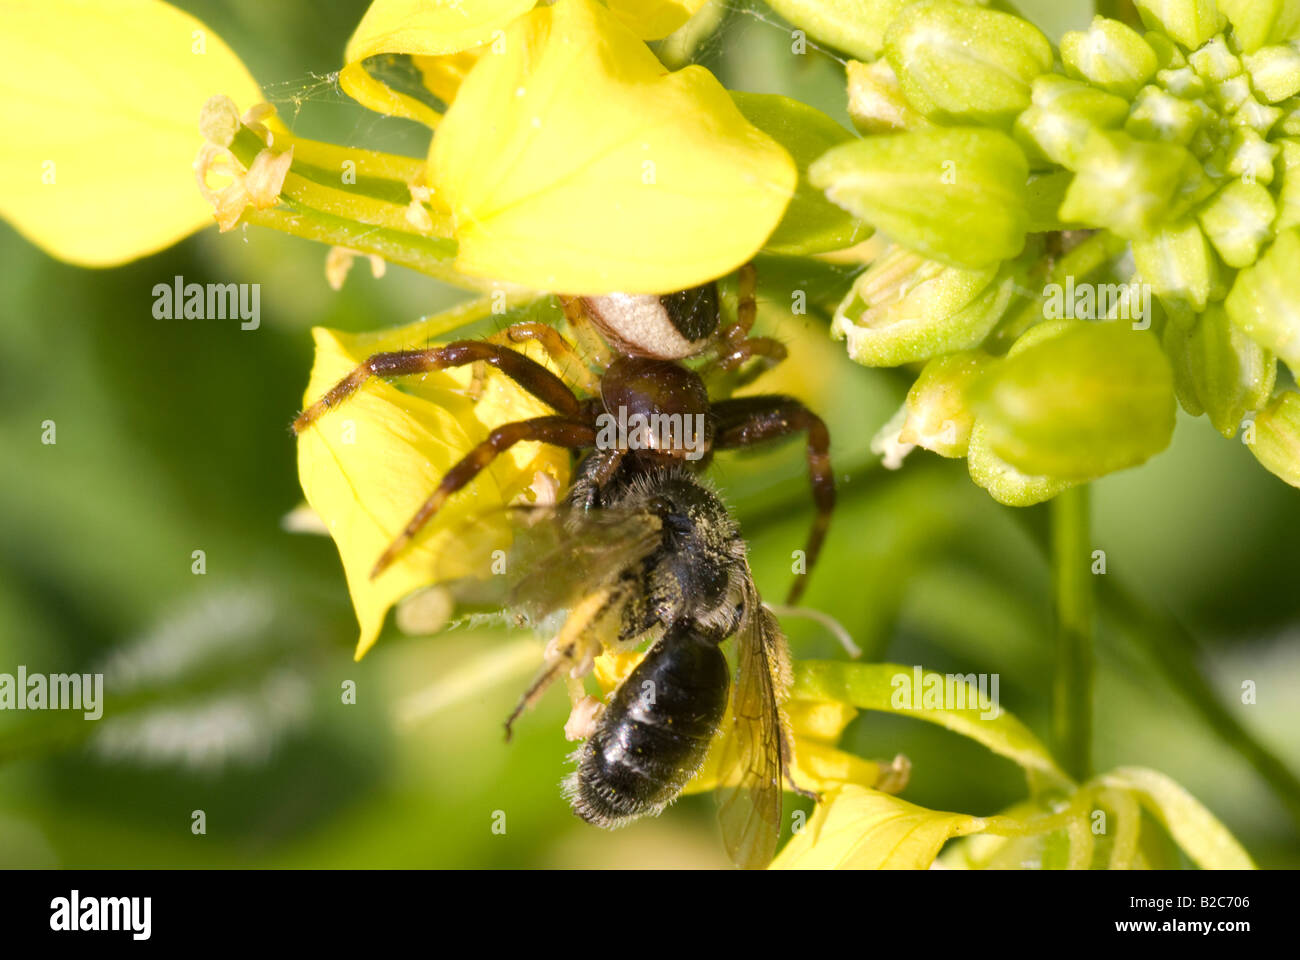 Crab Spider (Synaema globosum) with its prey, a bee, Western or European Honey Bee (Apis mellifera) - Stock Image